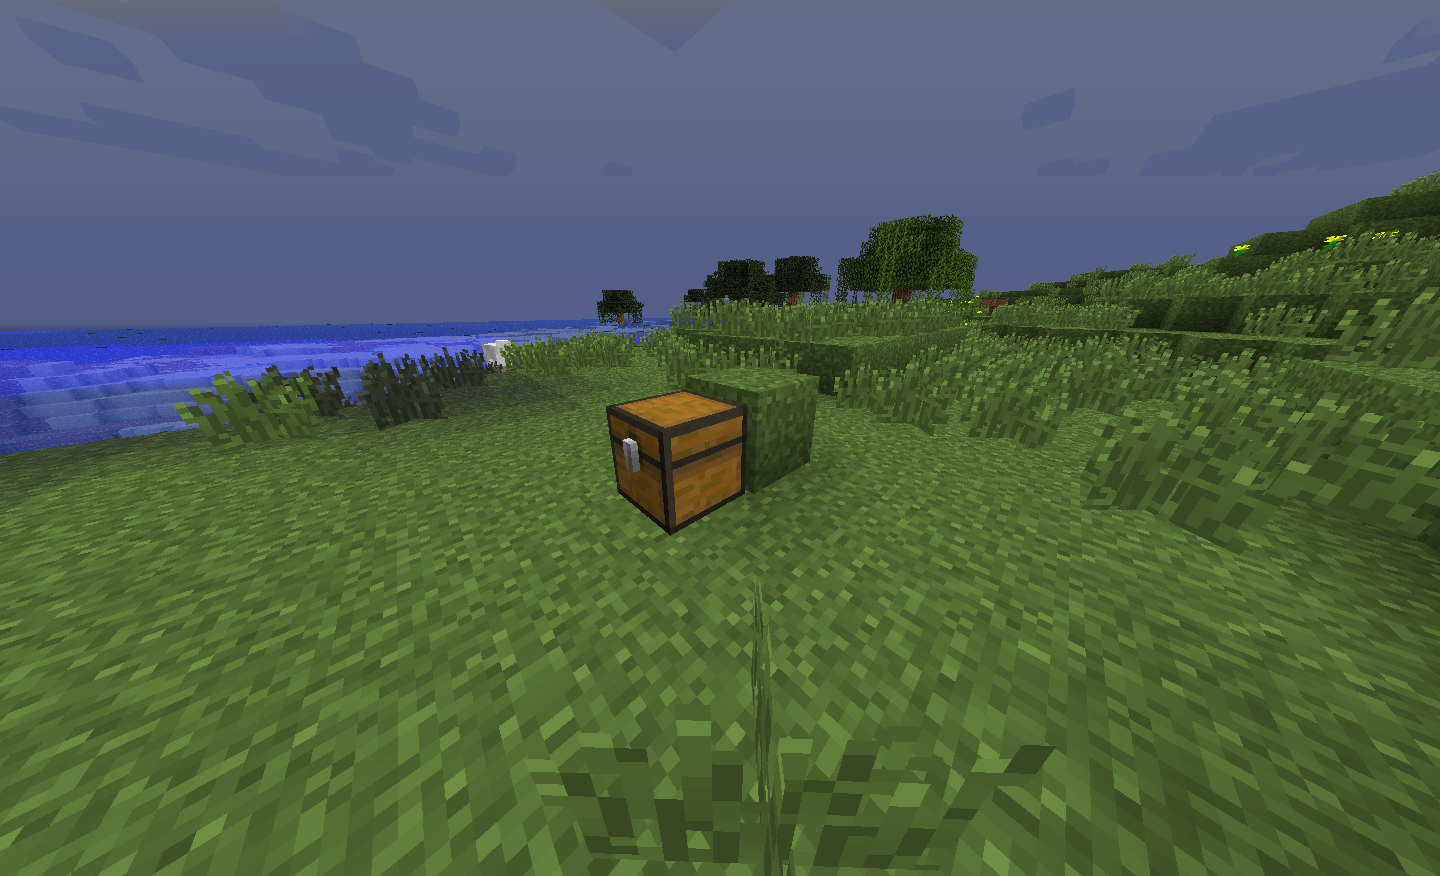 Another image showing a button on a block behind a chest.